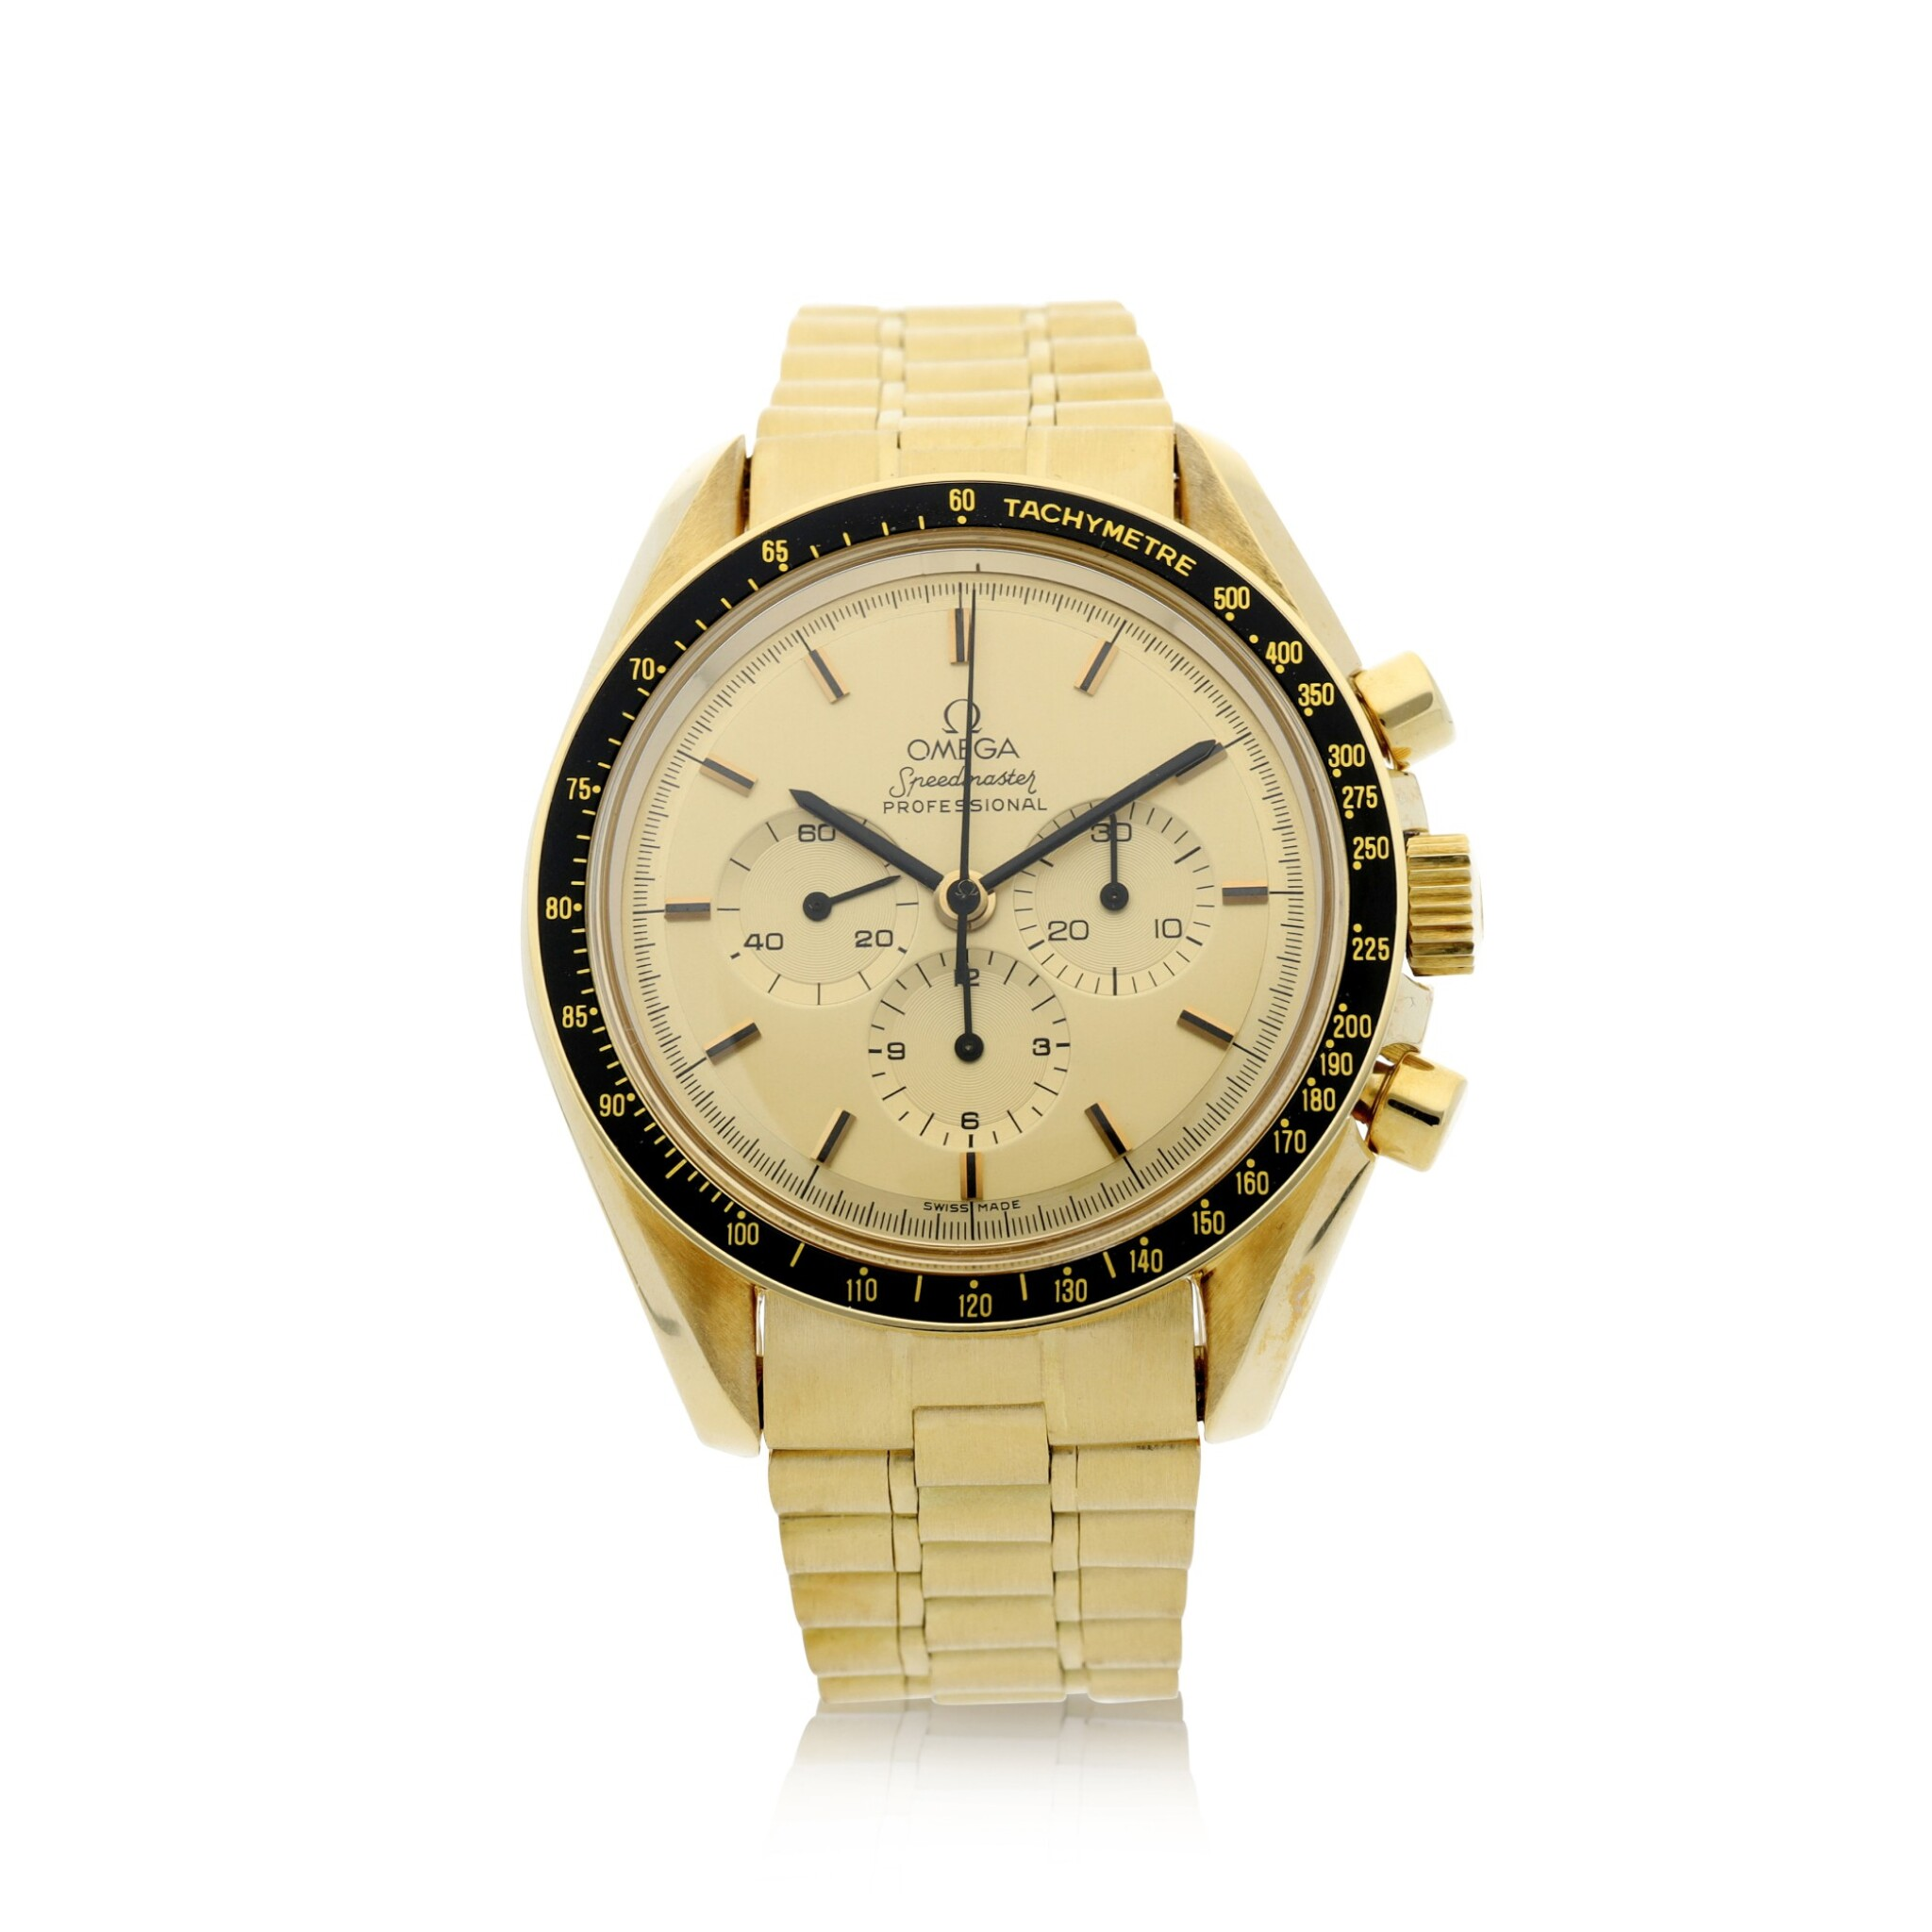 View full screen - View 1 of Lot 77. REFERENCE 145.022-69 SPEEDMASTER APOLLO XI 1969 A LIMITED EDITION YELLOW GOLD CHRONOGRAPH WRISTWATCH WITH BRACELET, A SELECTION OF WHICH WERE GIFTED TO ASTRONAUTS AND PERSONALITIES, CIRCA 1969.